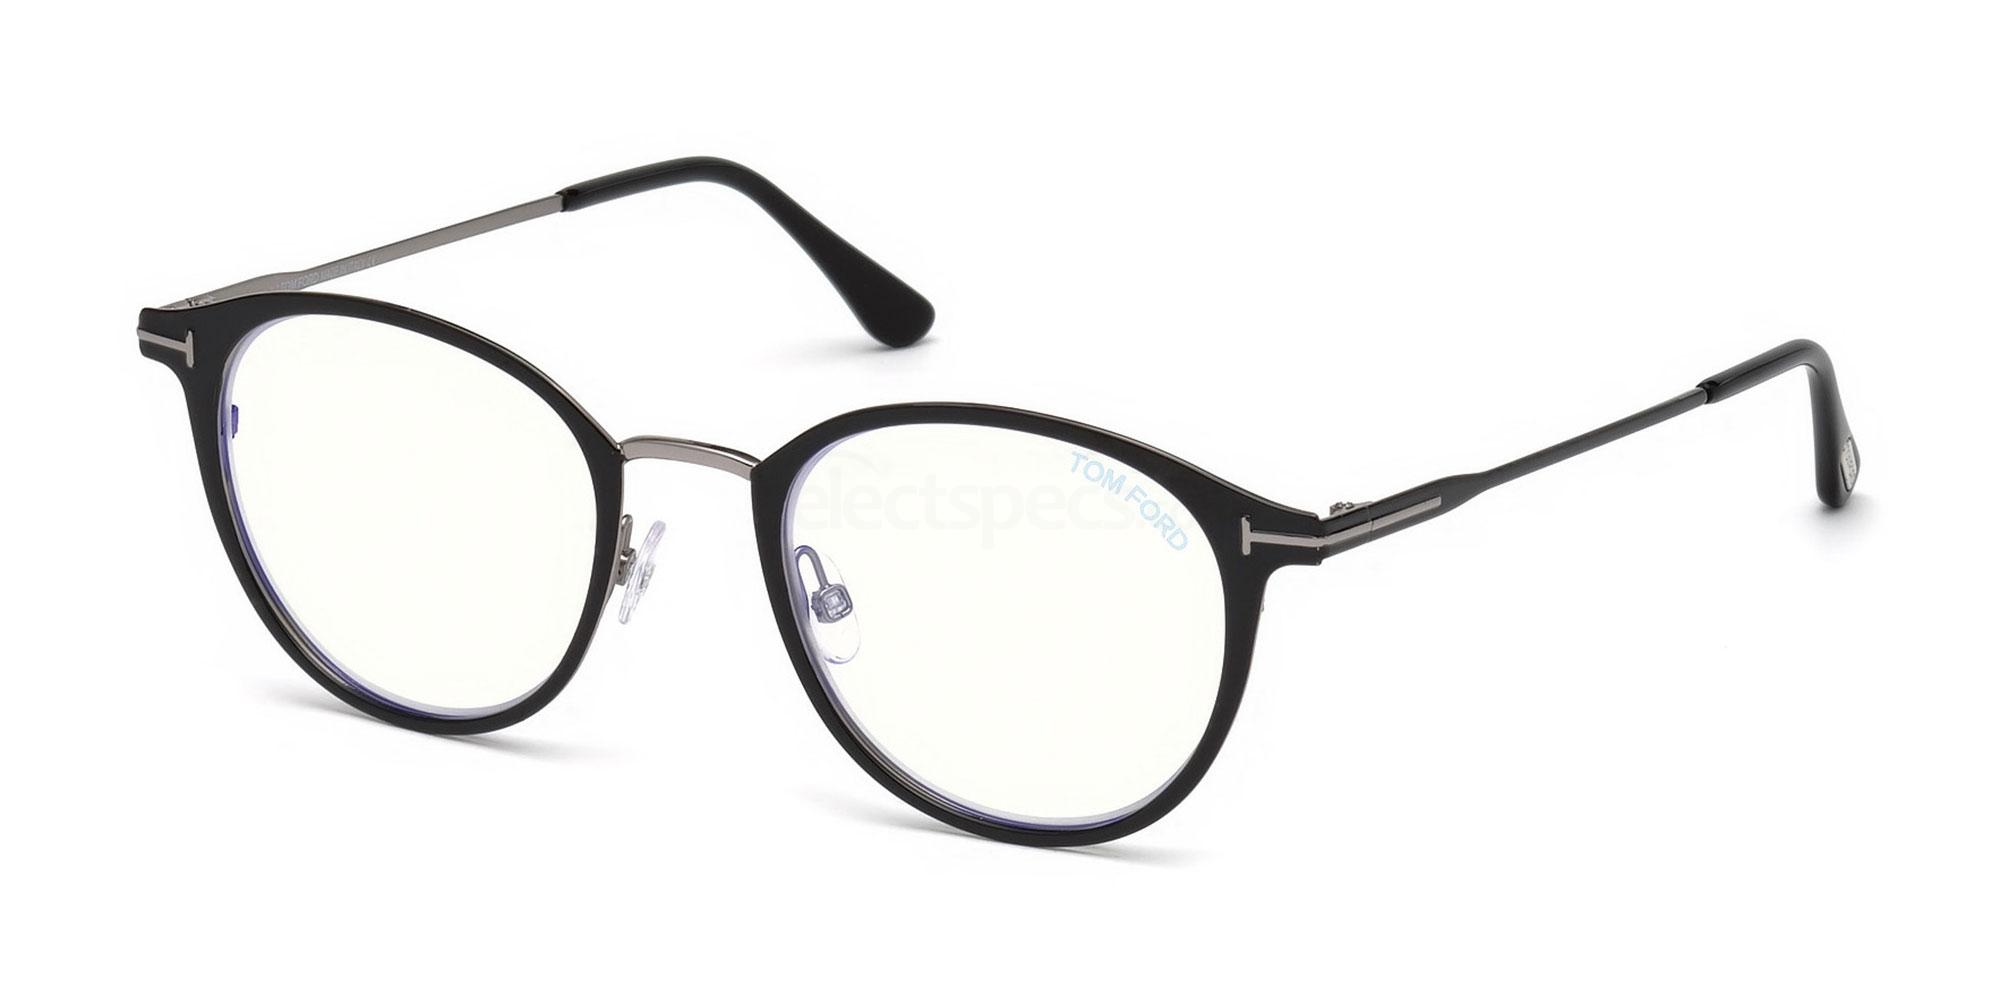 001 FT5528-B Glasses, Tom Ford